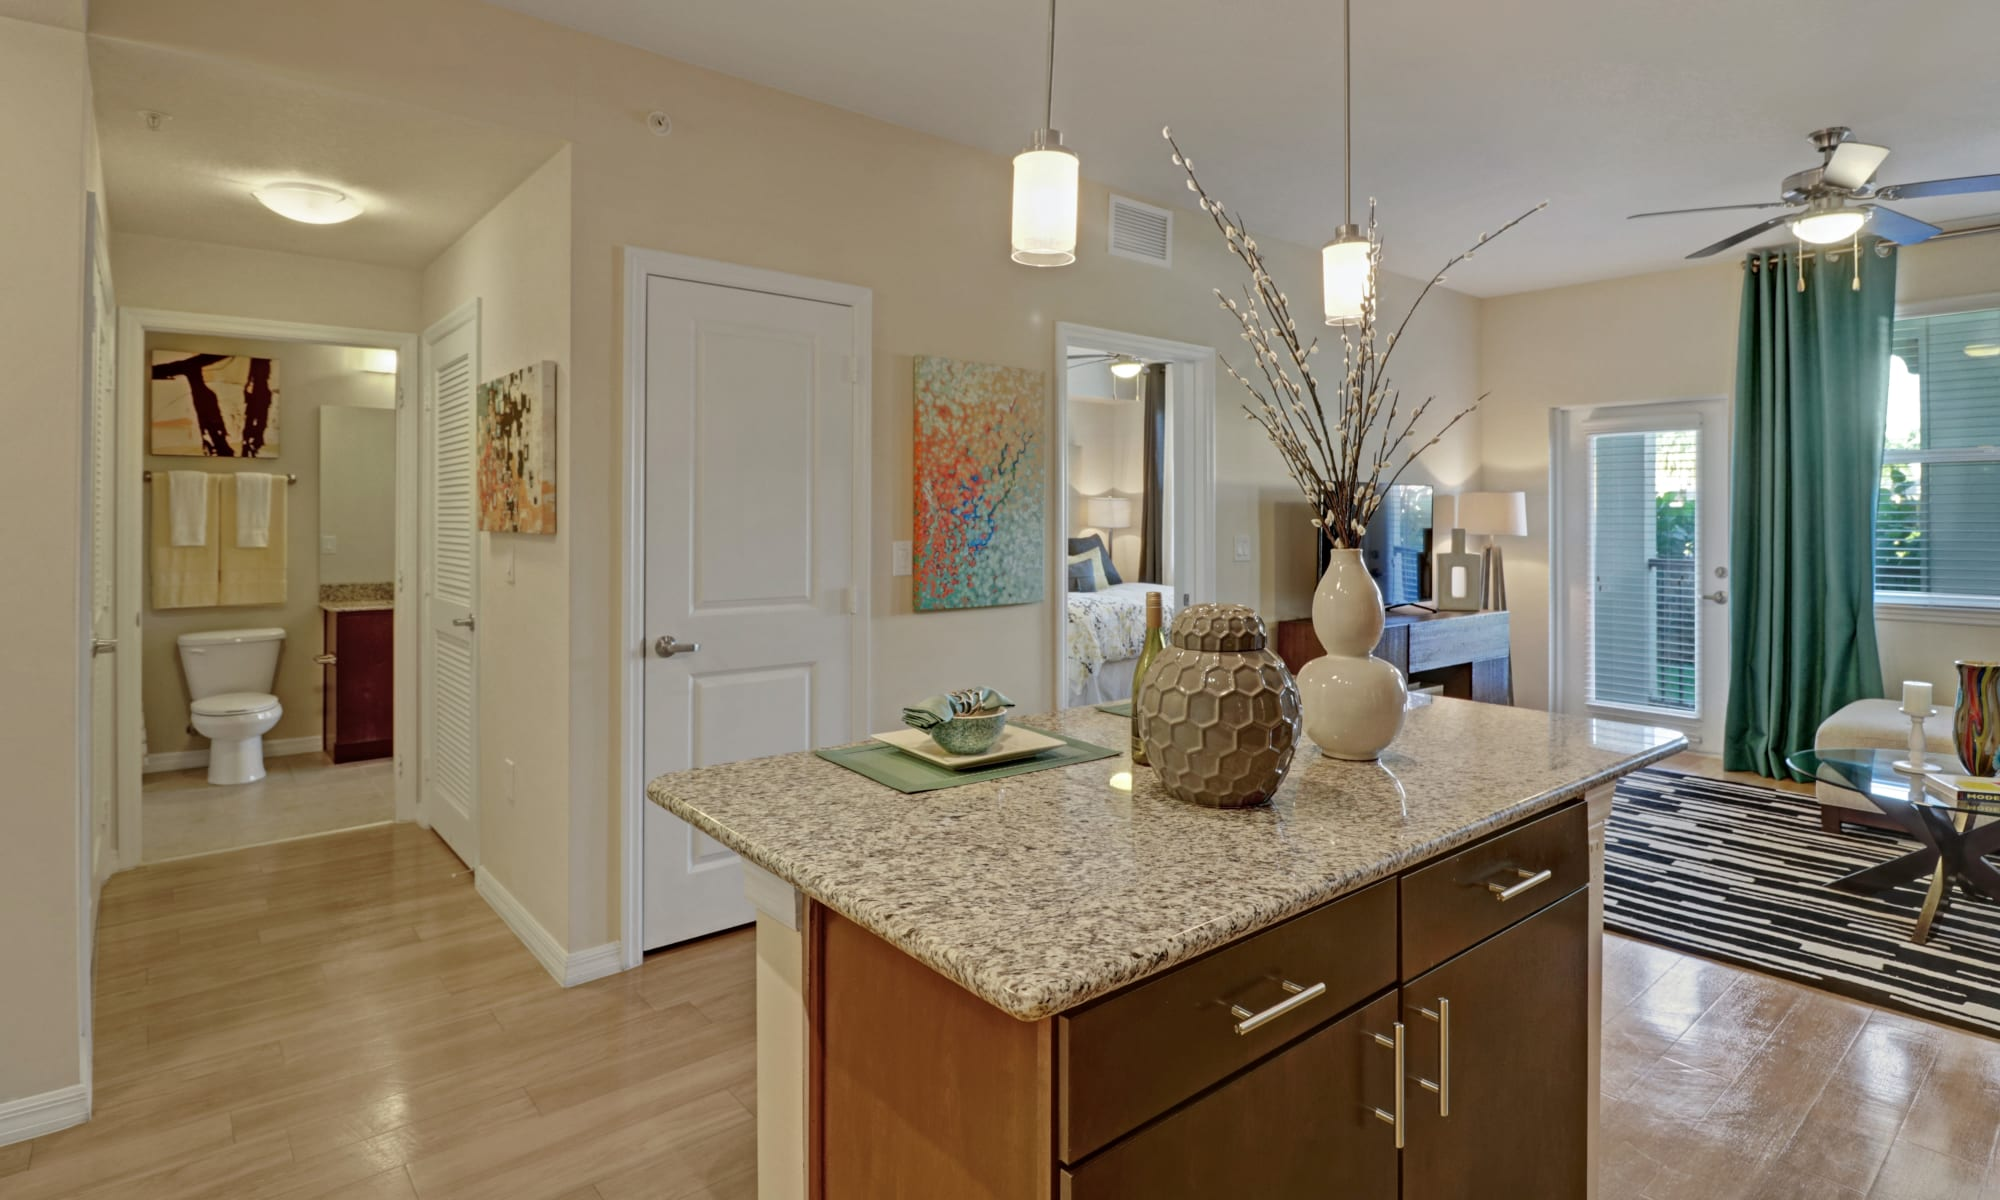 Apartments in Pompano Beach, Florida at Linden Pointe